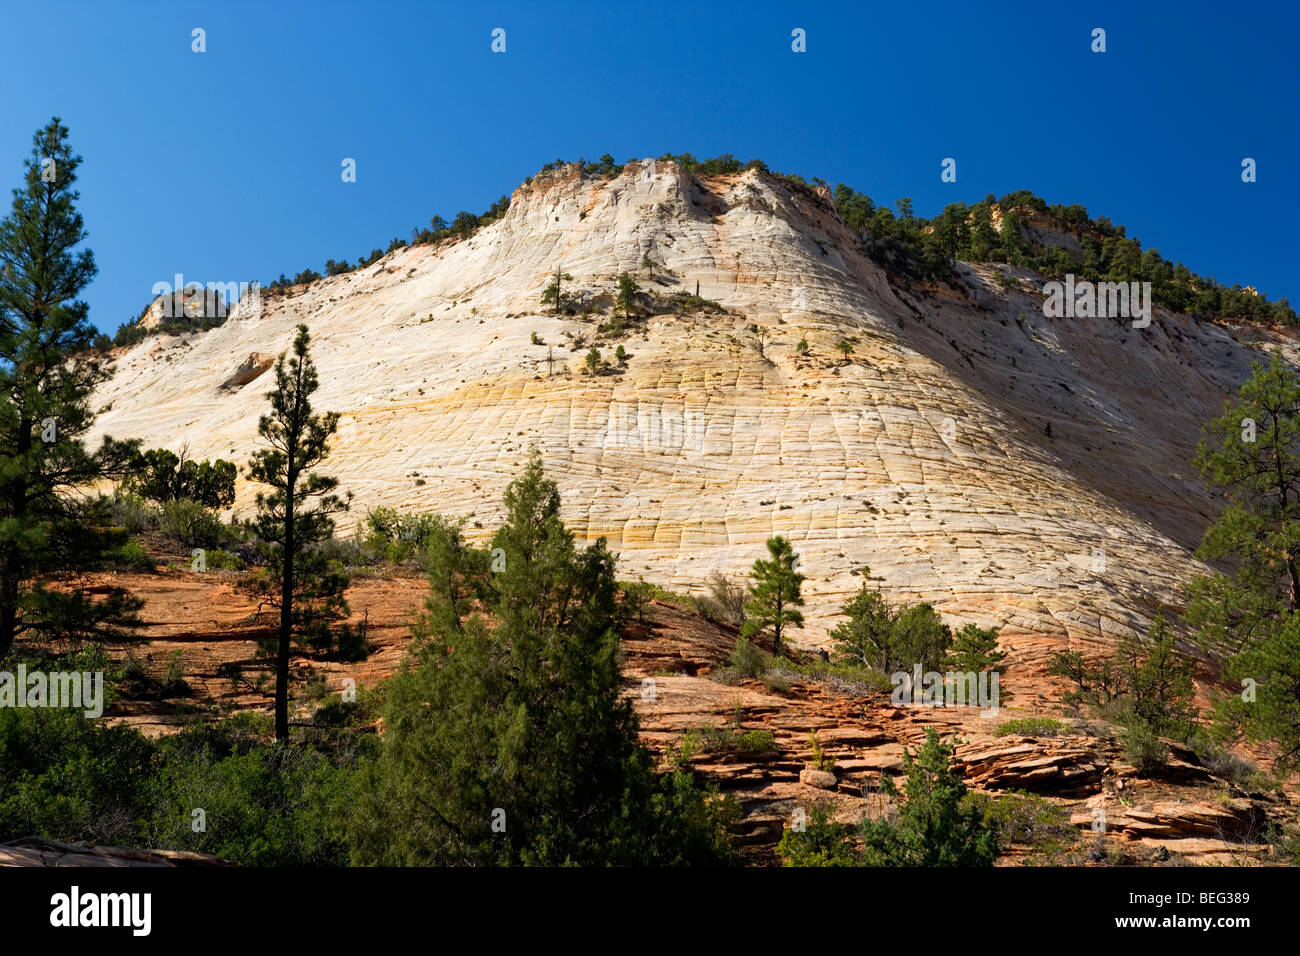 Checkerboard Mesa along Byway 9 in Zion National Park, Utah - Stock Image